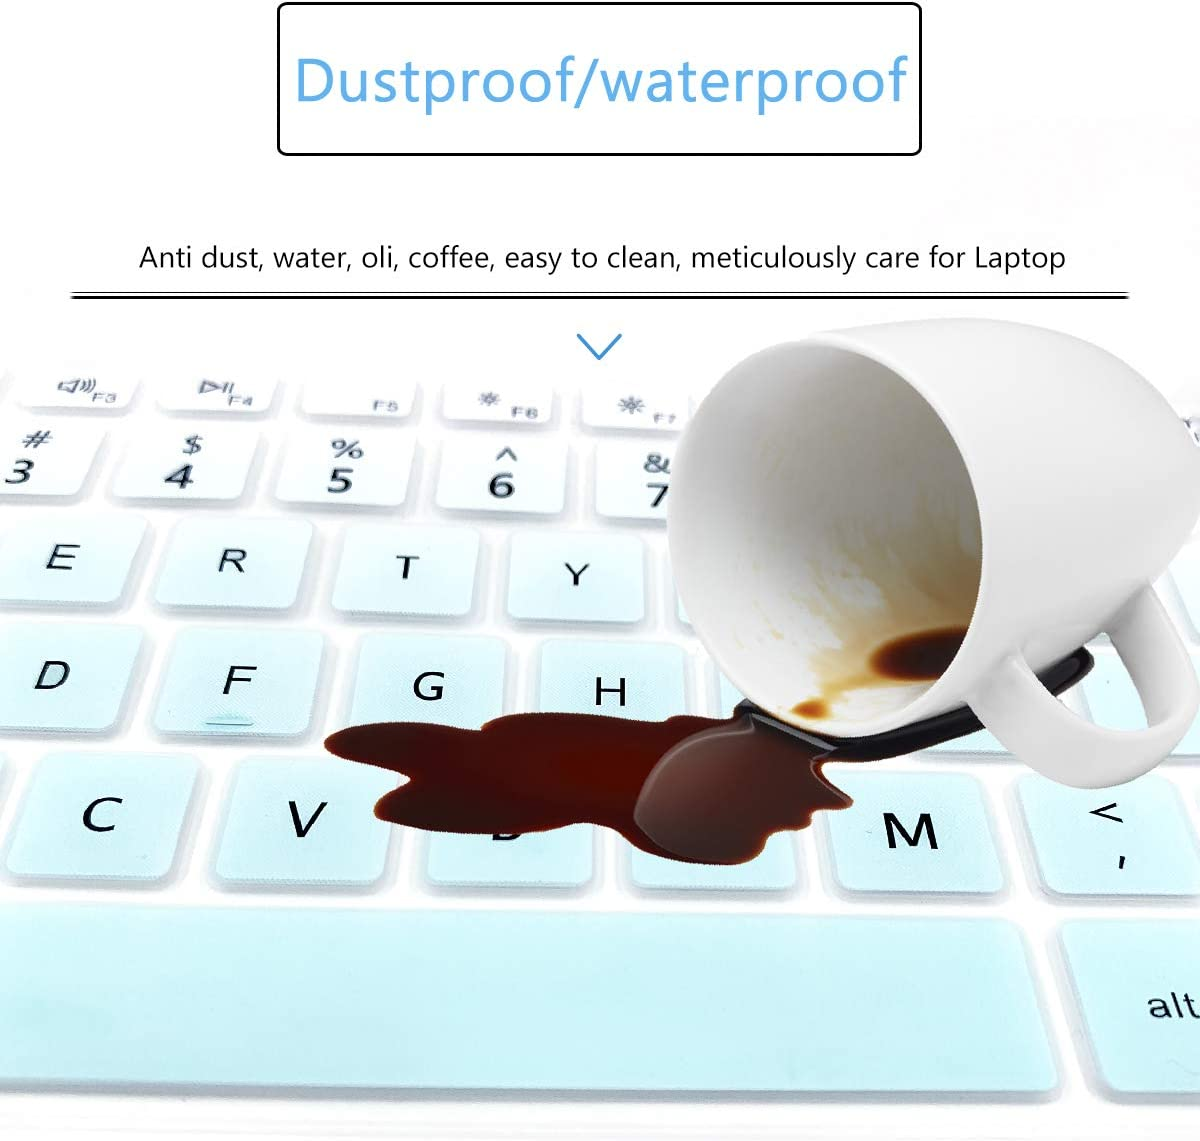 Keyboard Cover Fit for 2020 2019 15.6 Dell Inspiron 15 5000 5584,15.6 Dell Inspiron 15 7000 7590 7591 Laptop,Dell Vostro 15 7590 Laptop US Layout-Rainbow